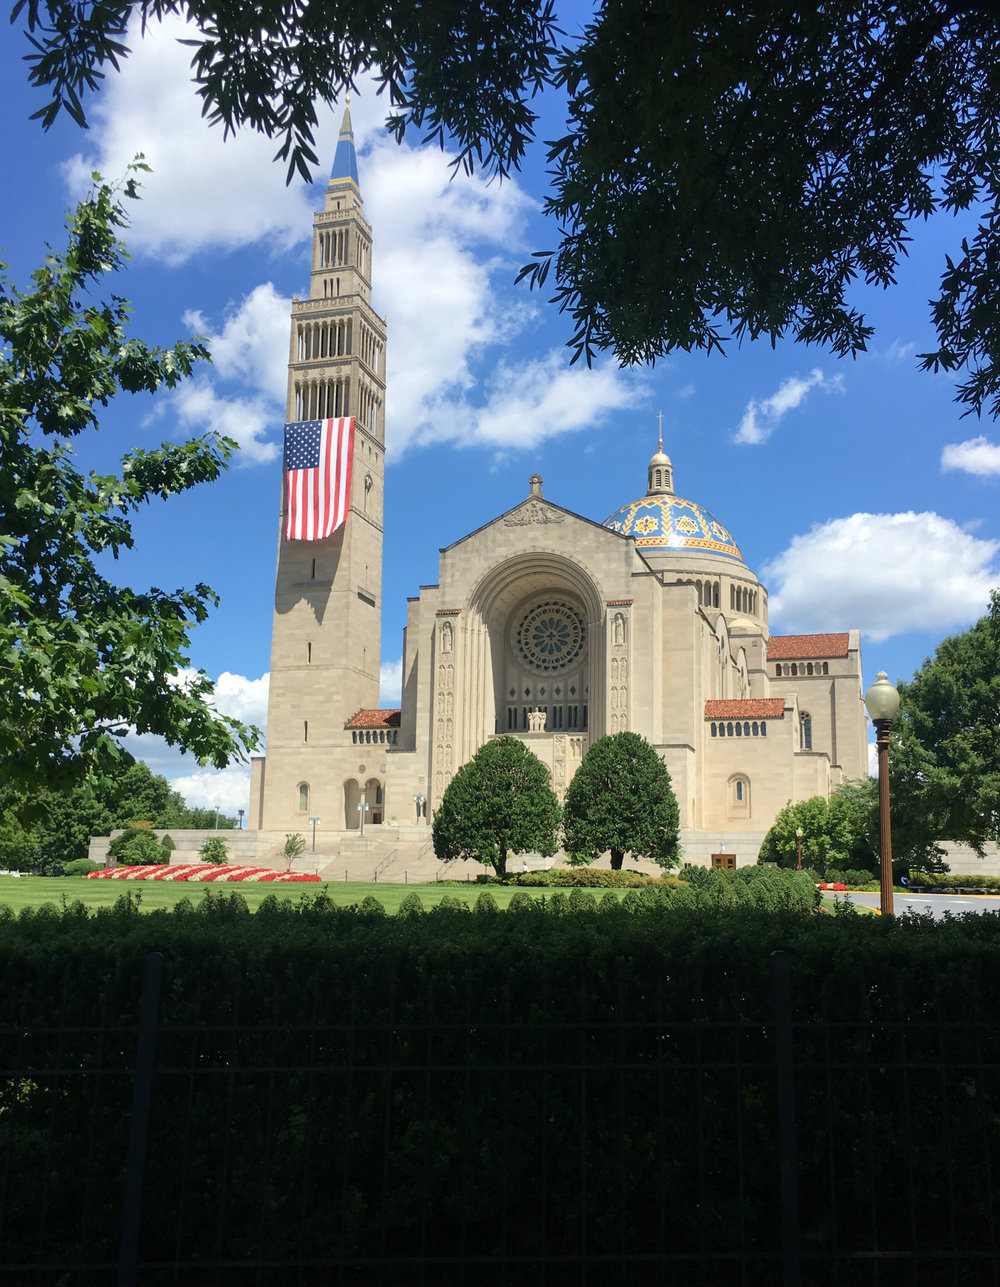 Basilica of the National Shrine of the Immaculate Conception - 1.2 miles